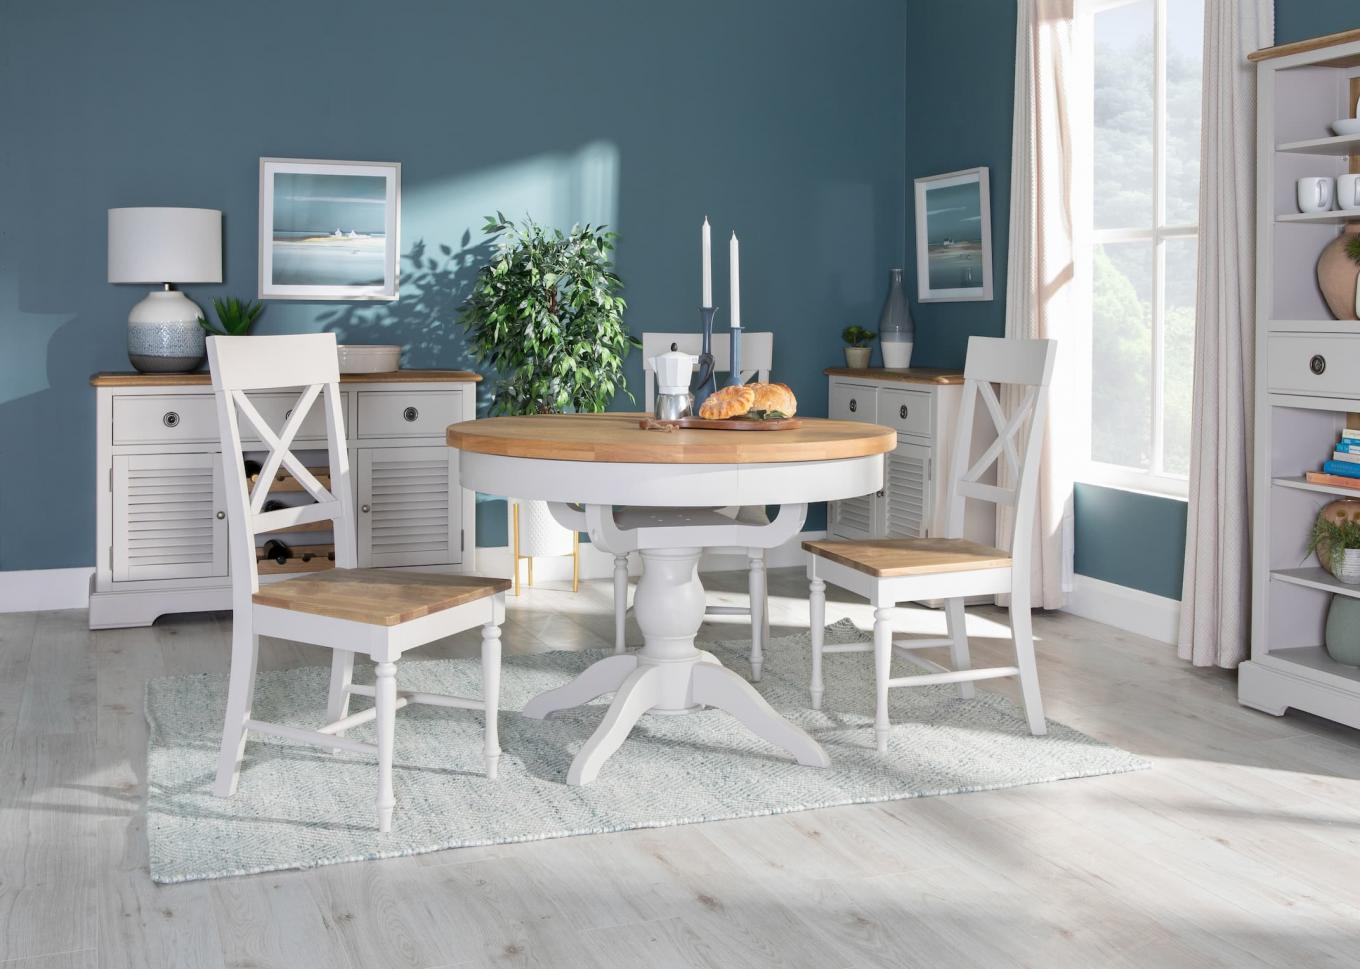 Toulouse Light Grey Wood Chairs with Sideboards Lookbook